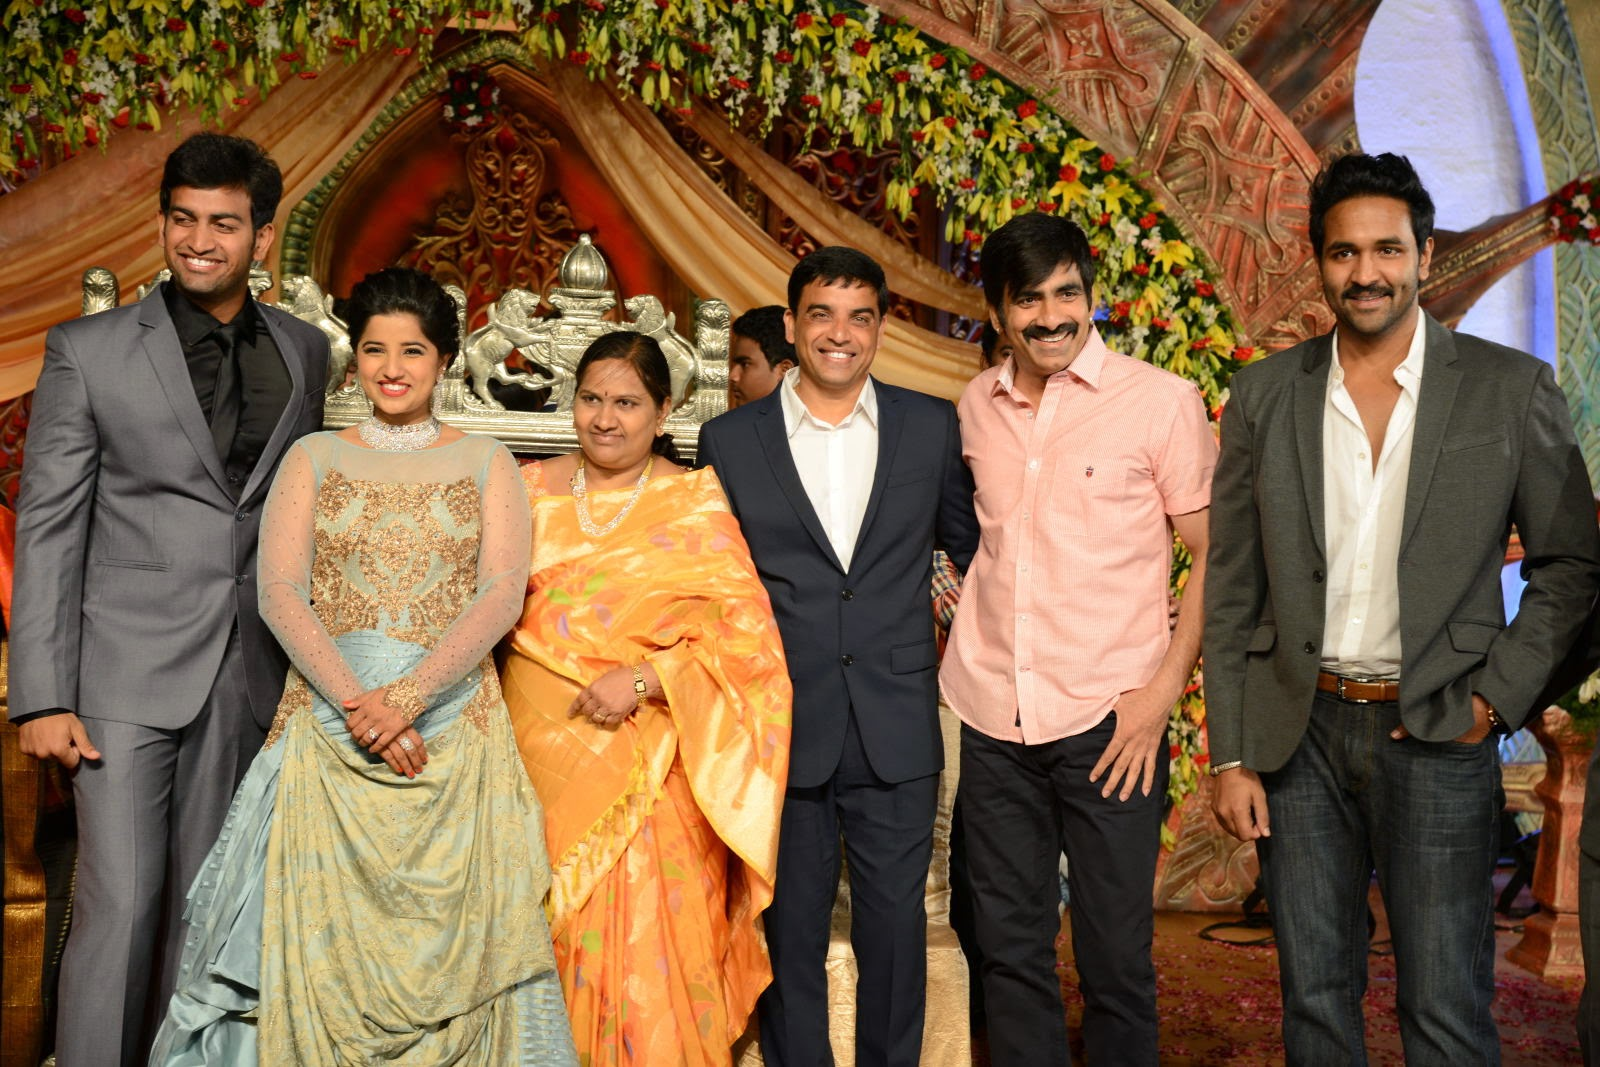 M: 120 Artificial Fall Maple Leaves in a Marriage photos of ravi teja